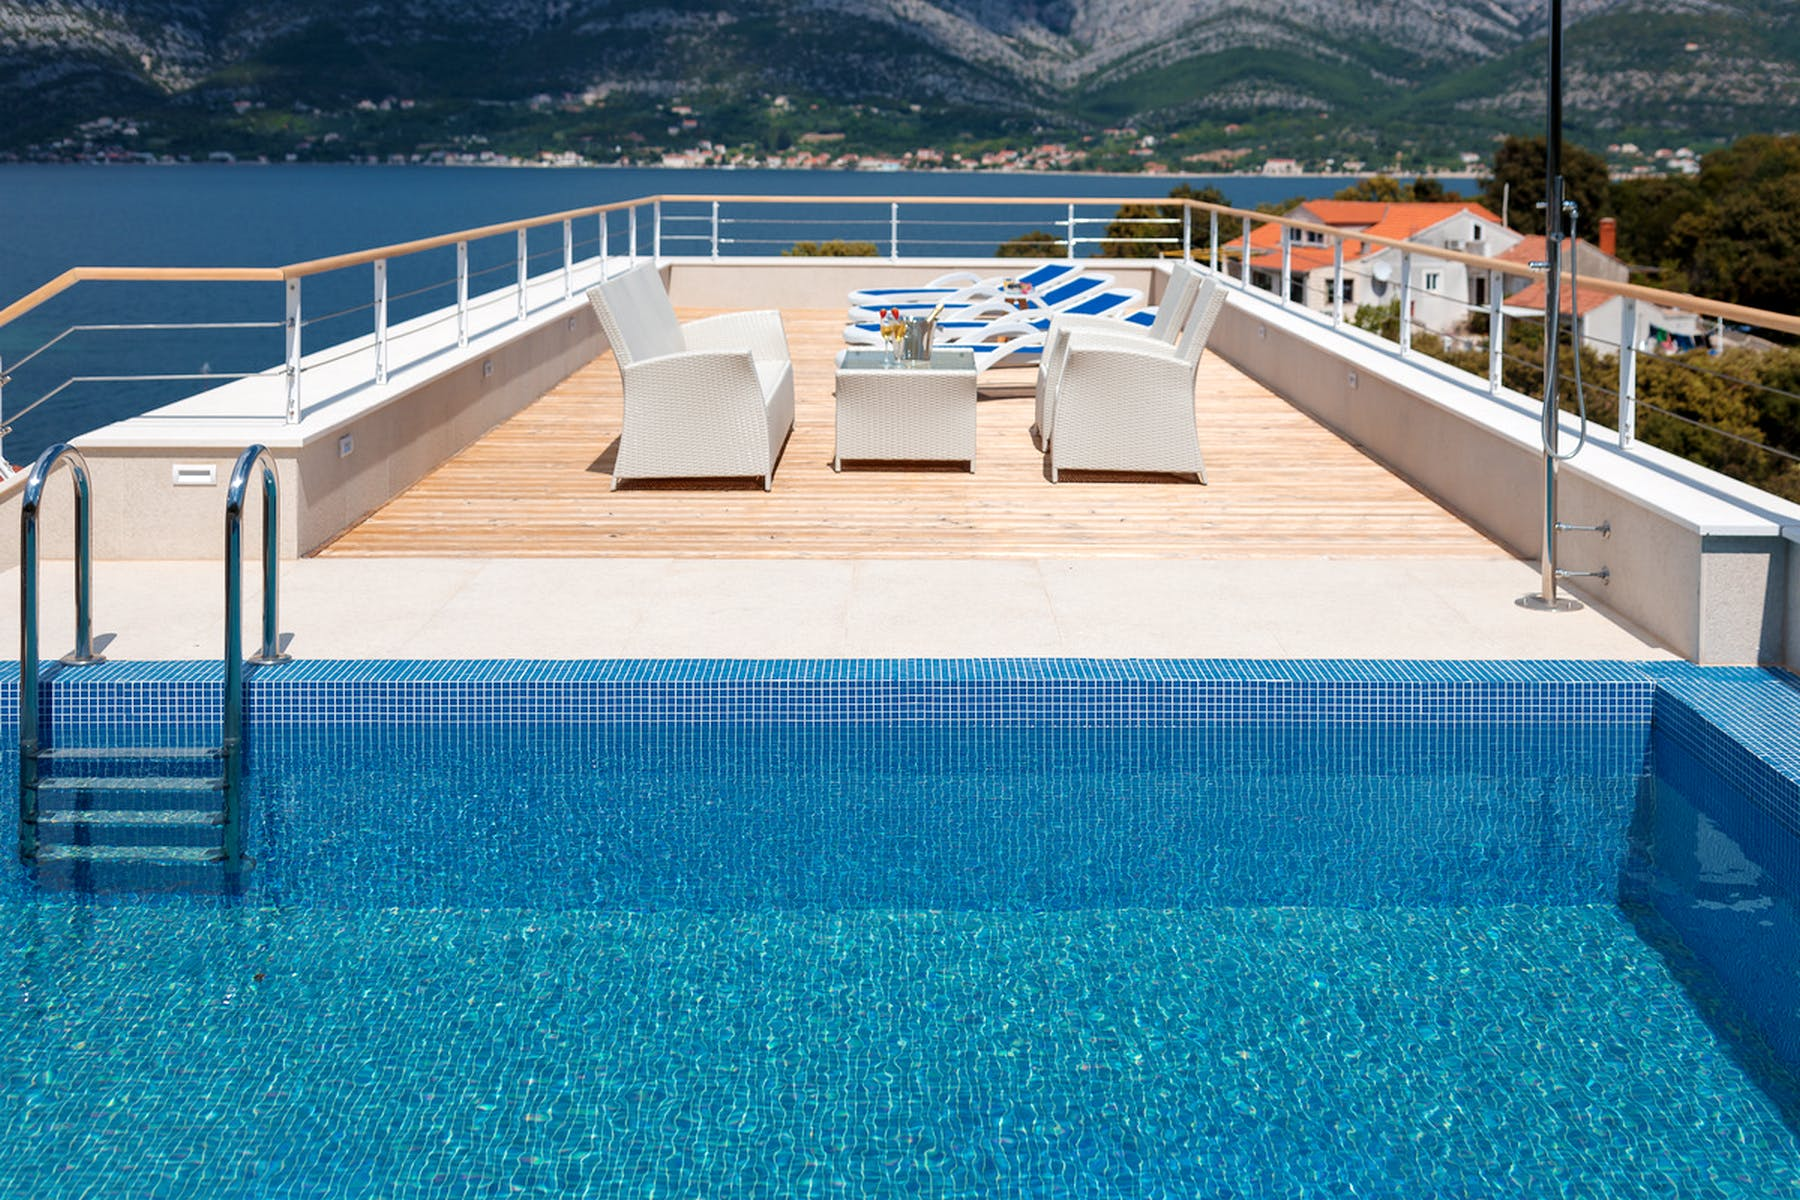 Villa's pool on the rooftop